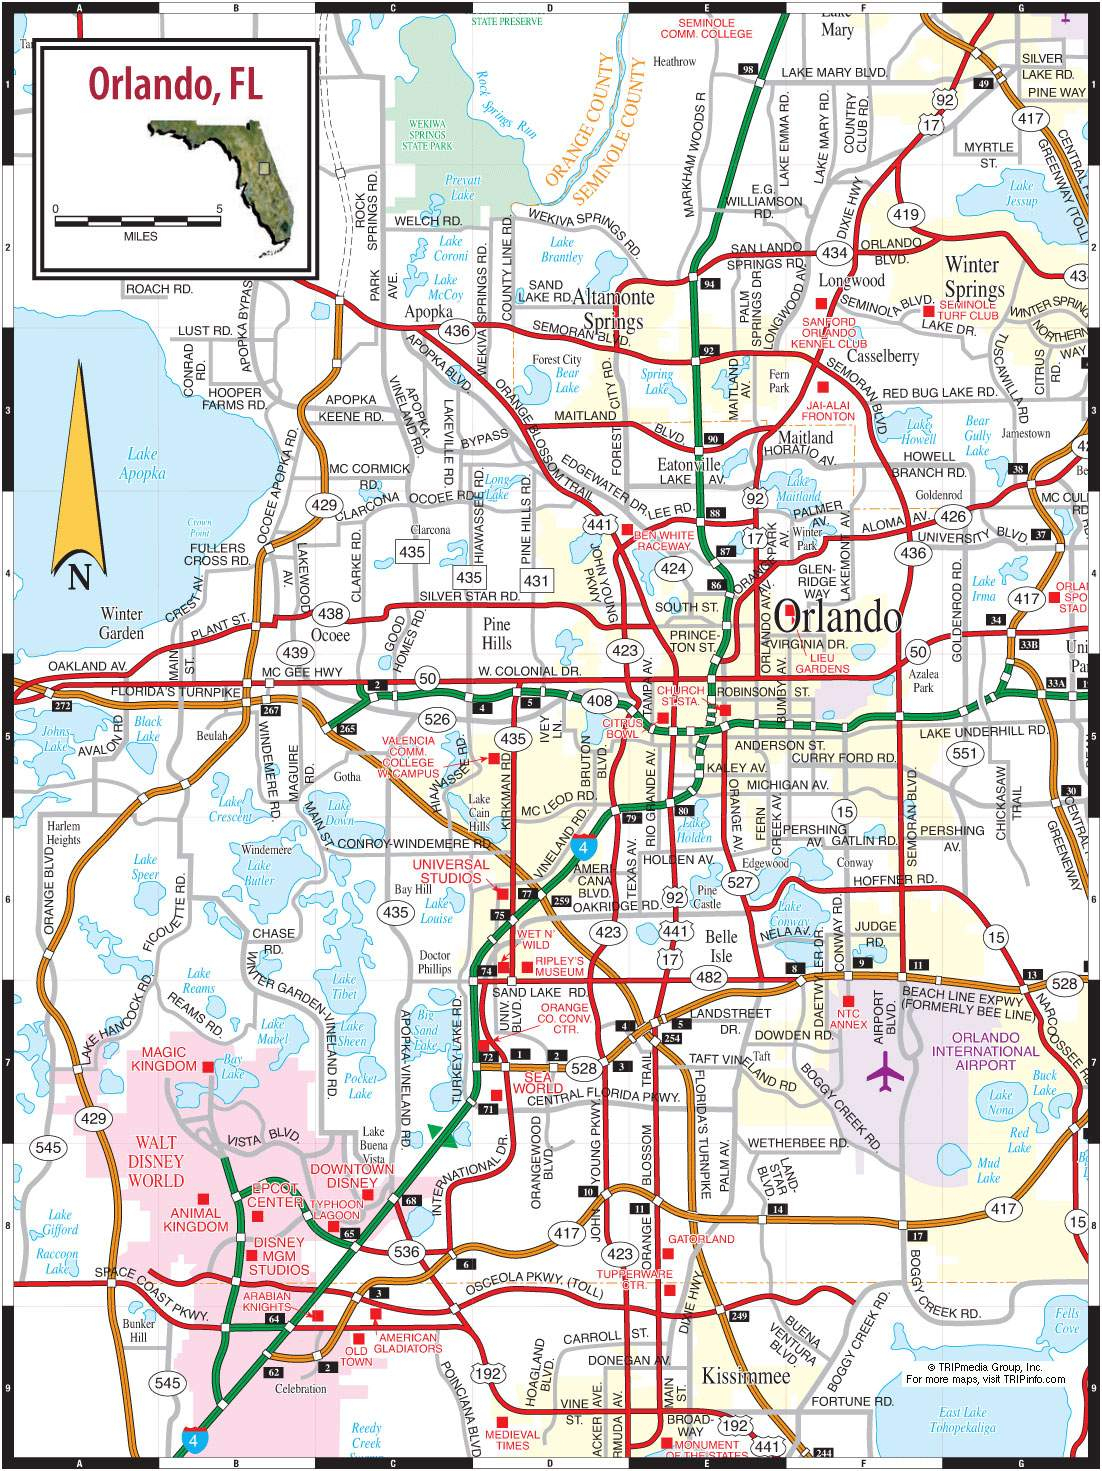 Large Orlando Maps For Free Download And Print | High-Resolution And - Map Of Florida Near Orlando